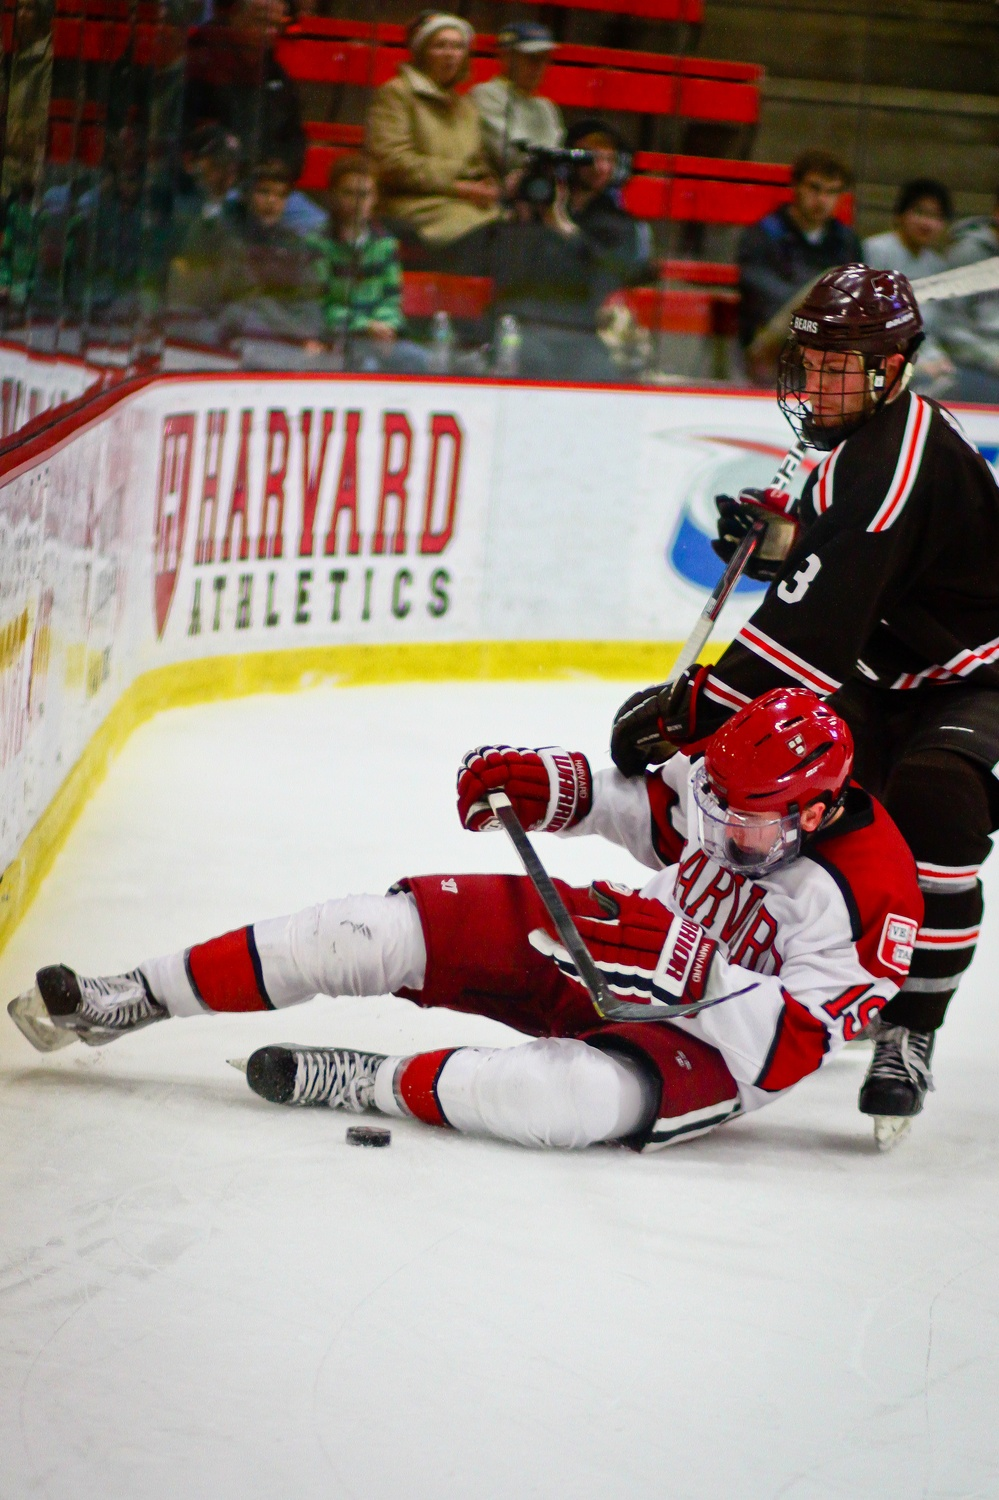 When Jimmy Vesey (19) was a freshman, Harvard won just 10 games, leading the media to take aim at Ted Donato's coaching performance.